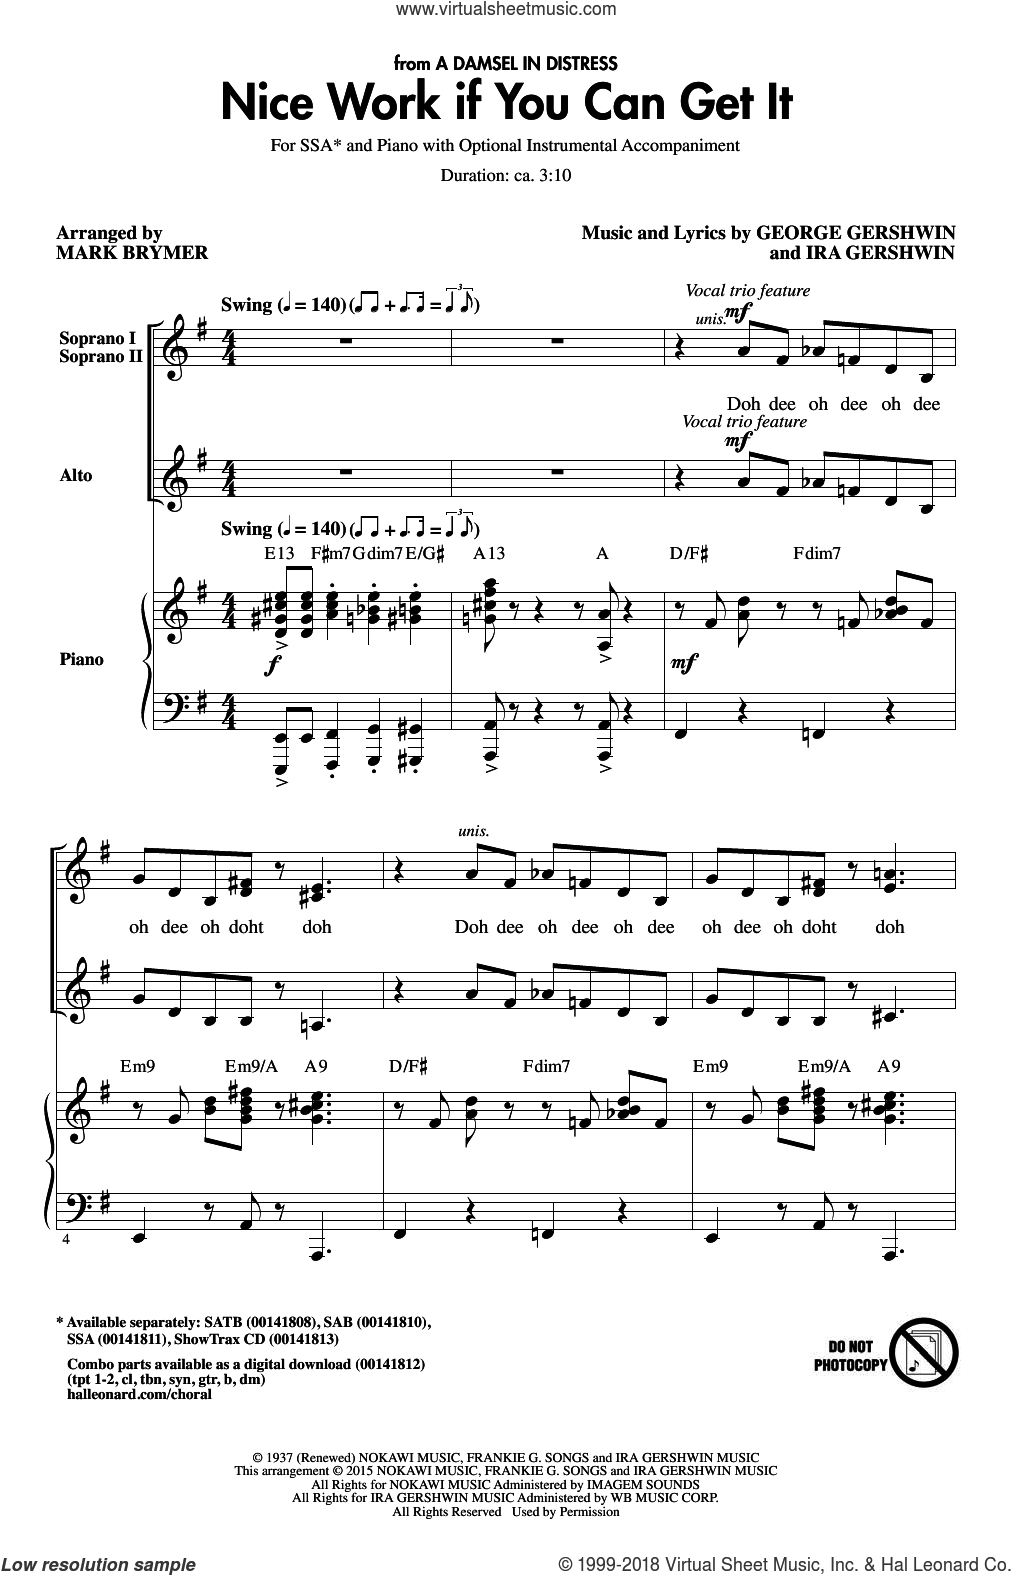 Nice Work If You Can Get It sheet music for choir (soprano voice, alto voice, choir) by George Gershwin, Mark Brymer, Frank Sinatra and Ira Gershwin, intermediate choir (soprano voice, alto voice, choir). Score Image Preview.